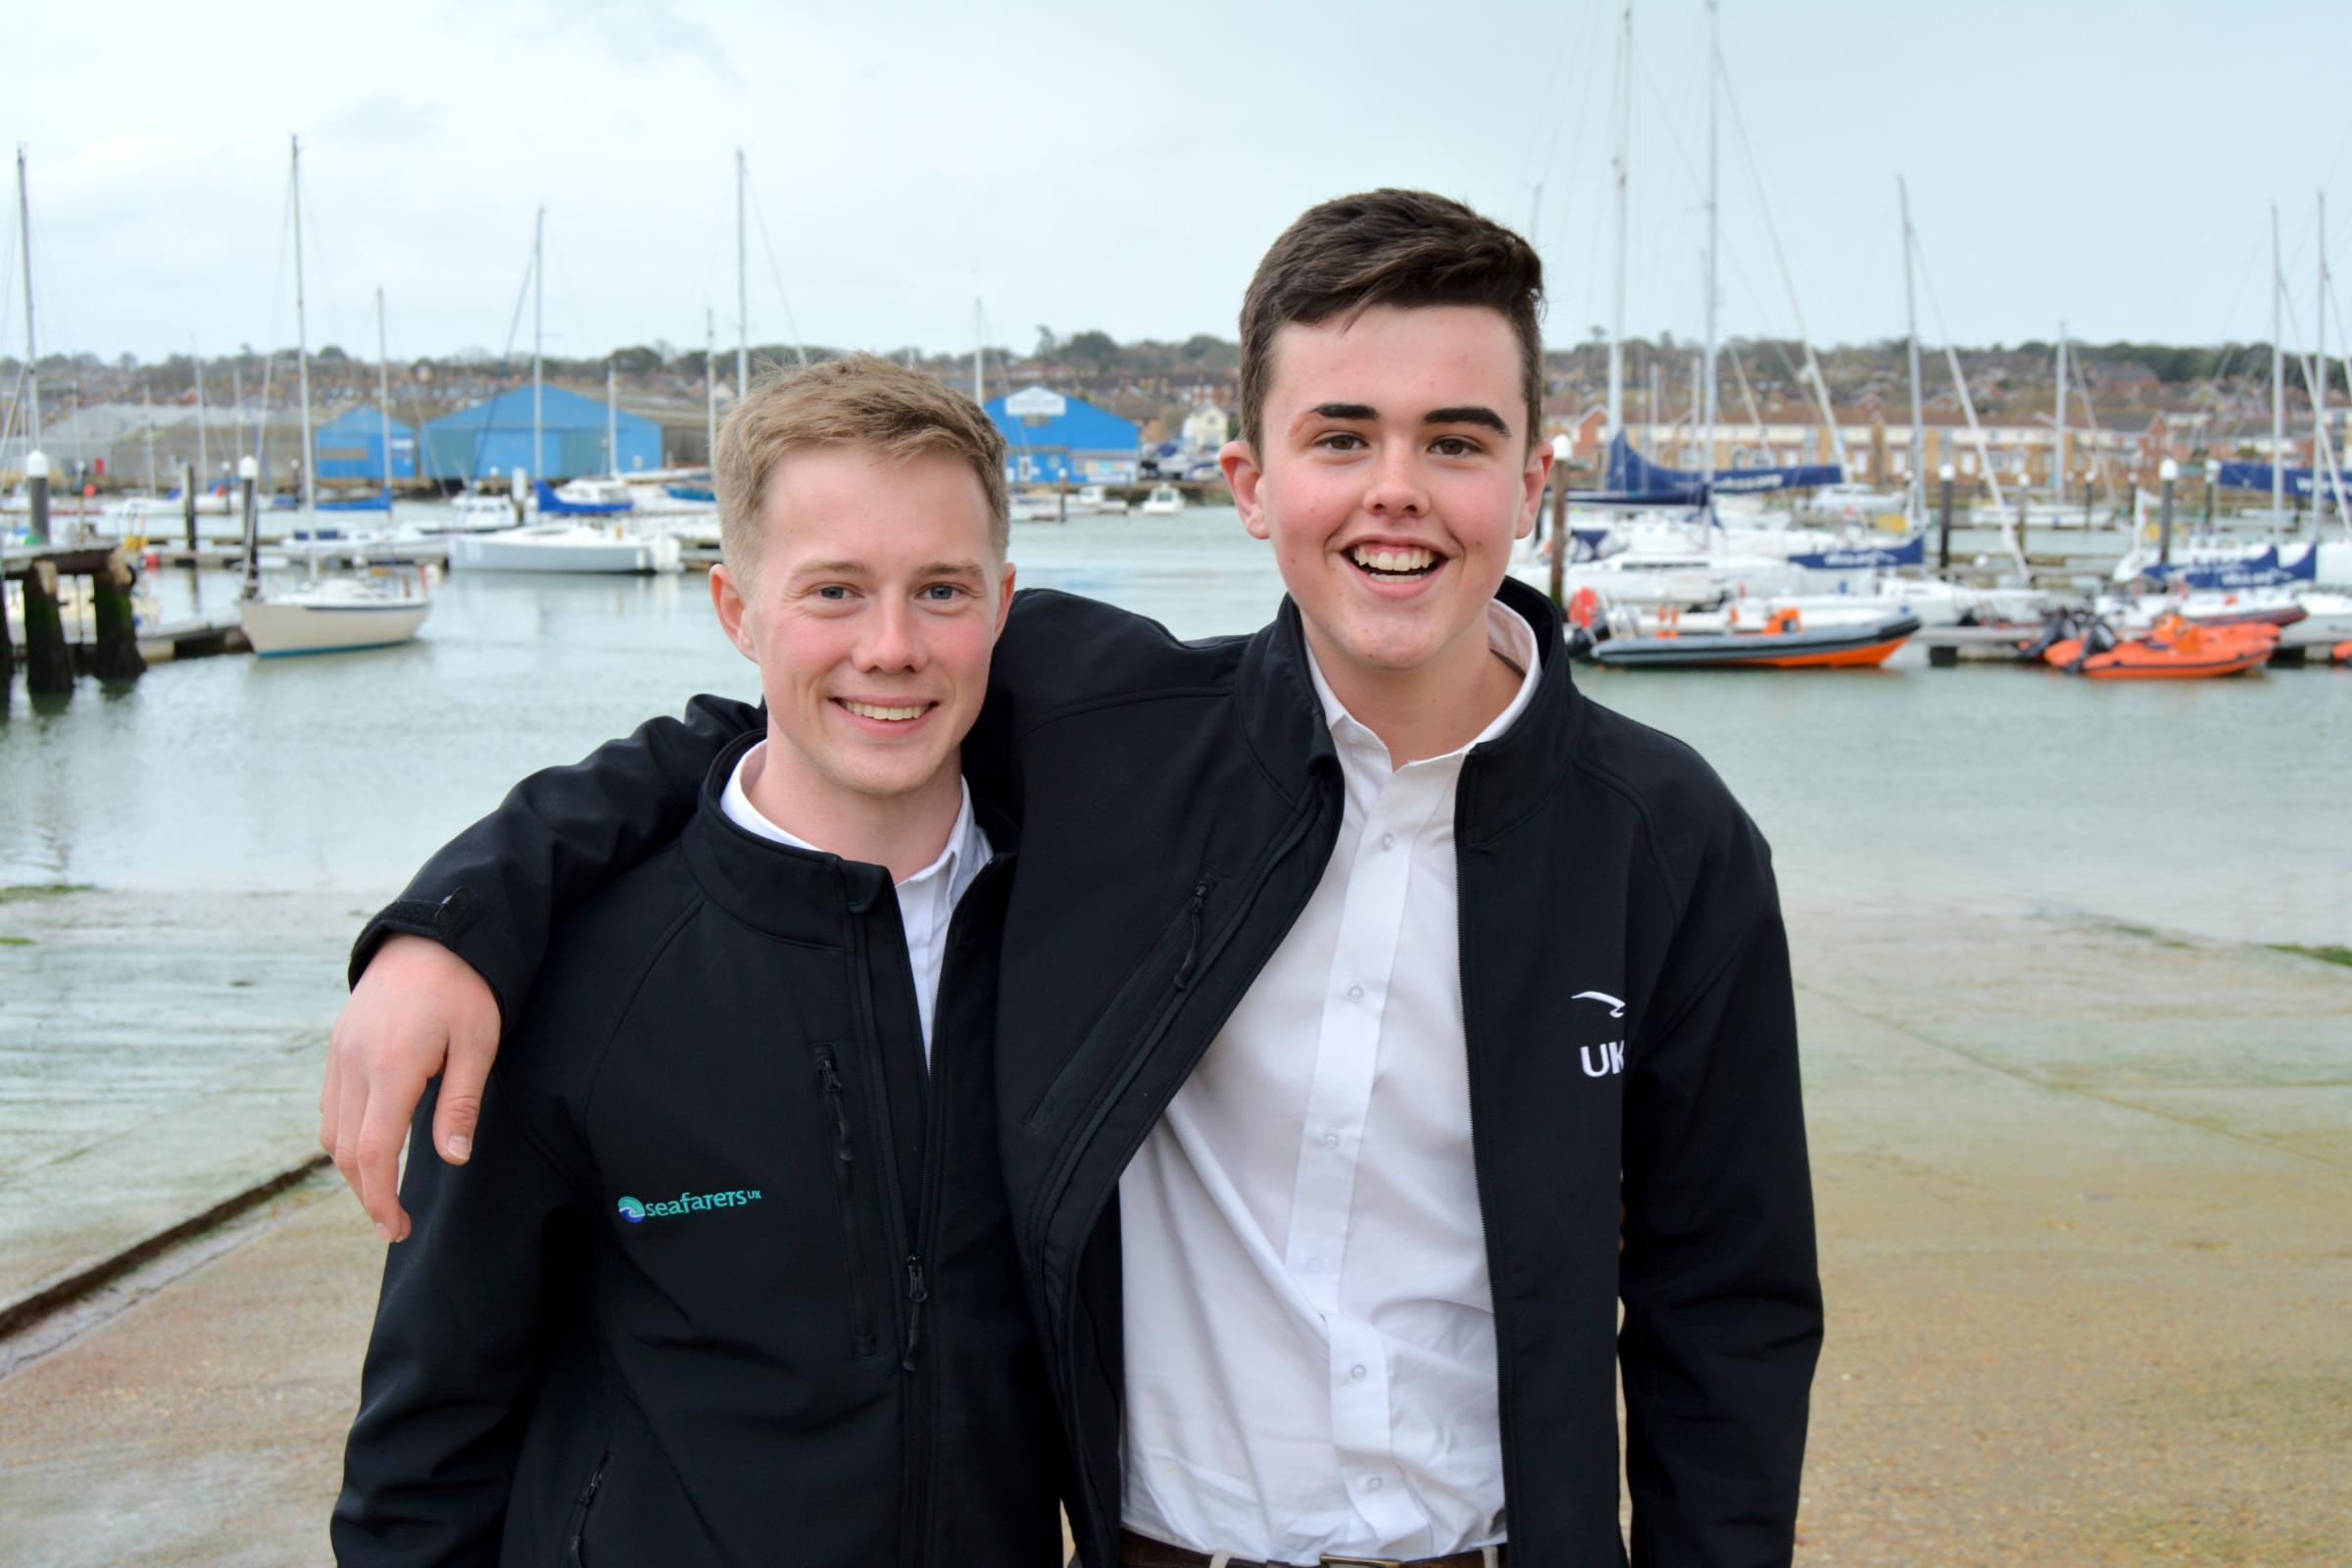 Joe Burnip, 21, and Henry Woolford, 18, who have just graduated from UKSA.